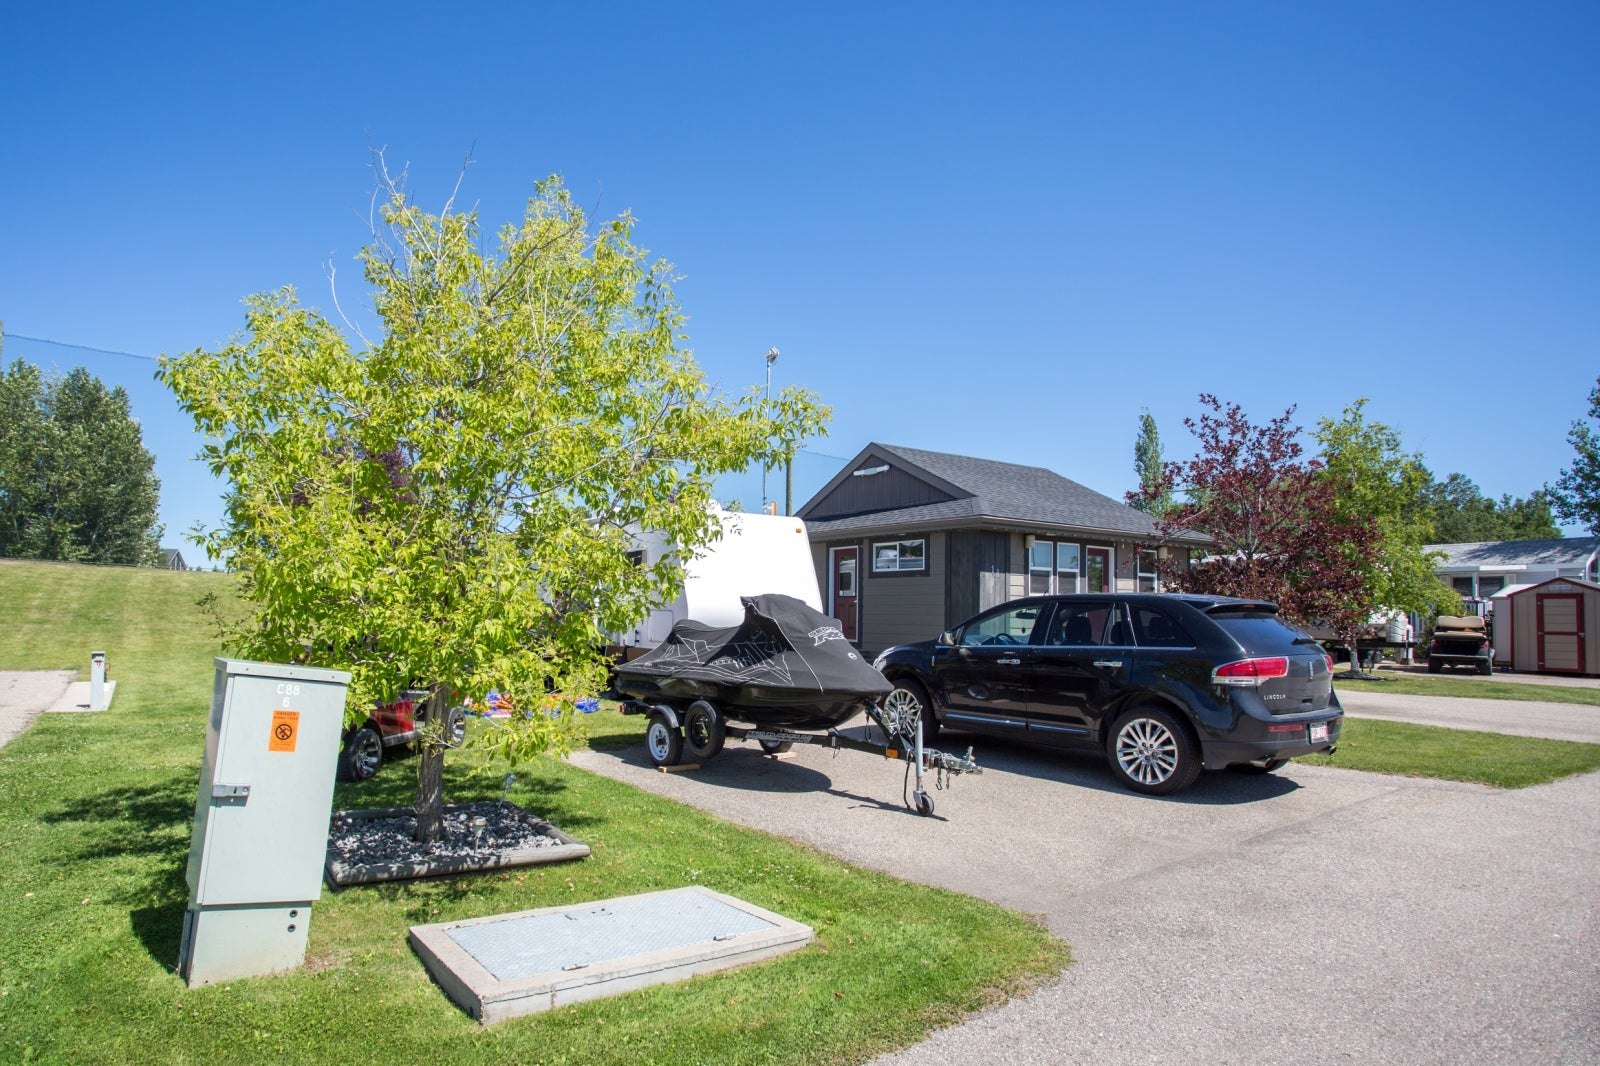 3010 25074 South Pine Lake Road, Red Deer County  - Whispering Pines Condominium for sale(A1018690) #1